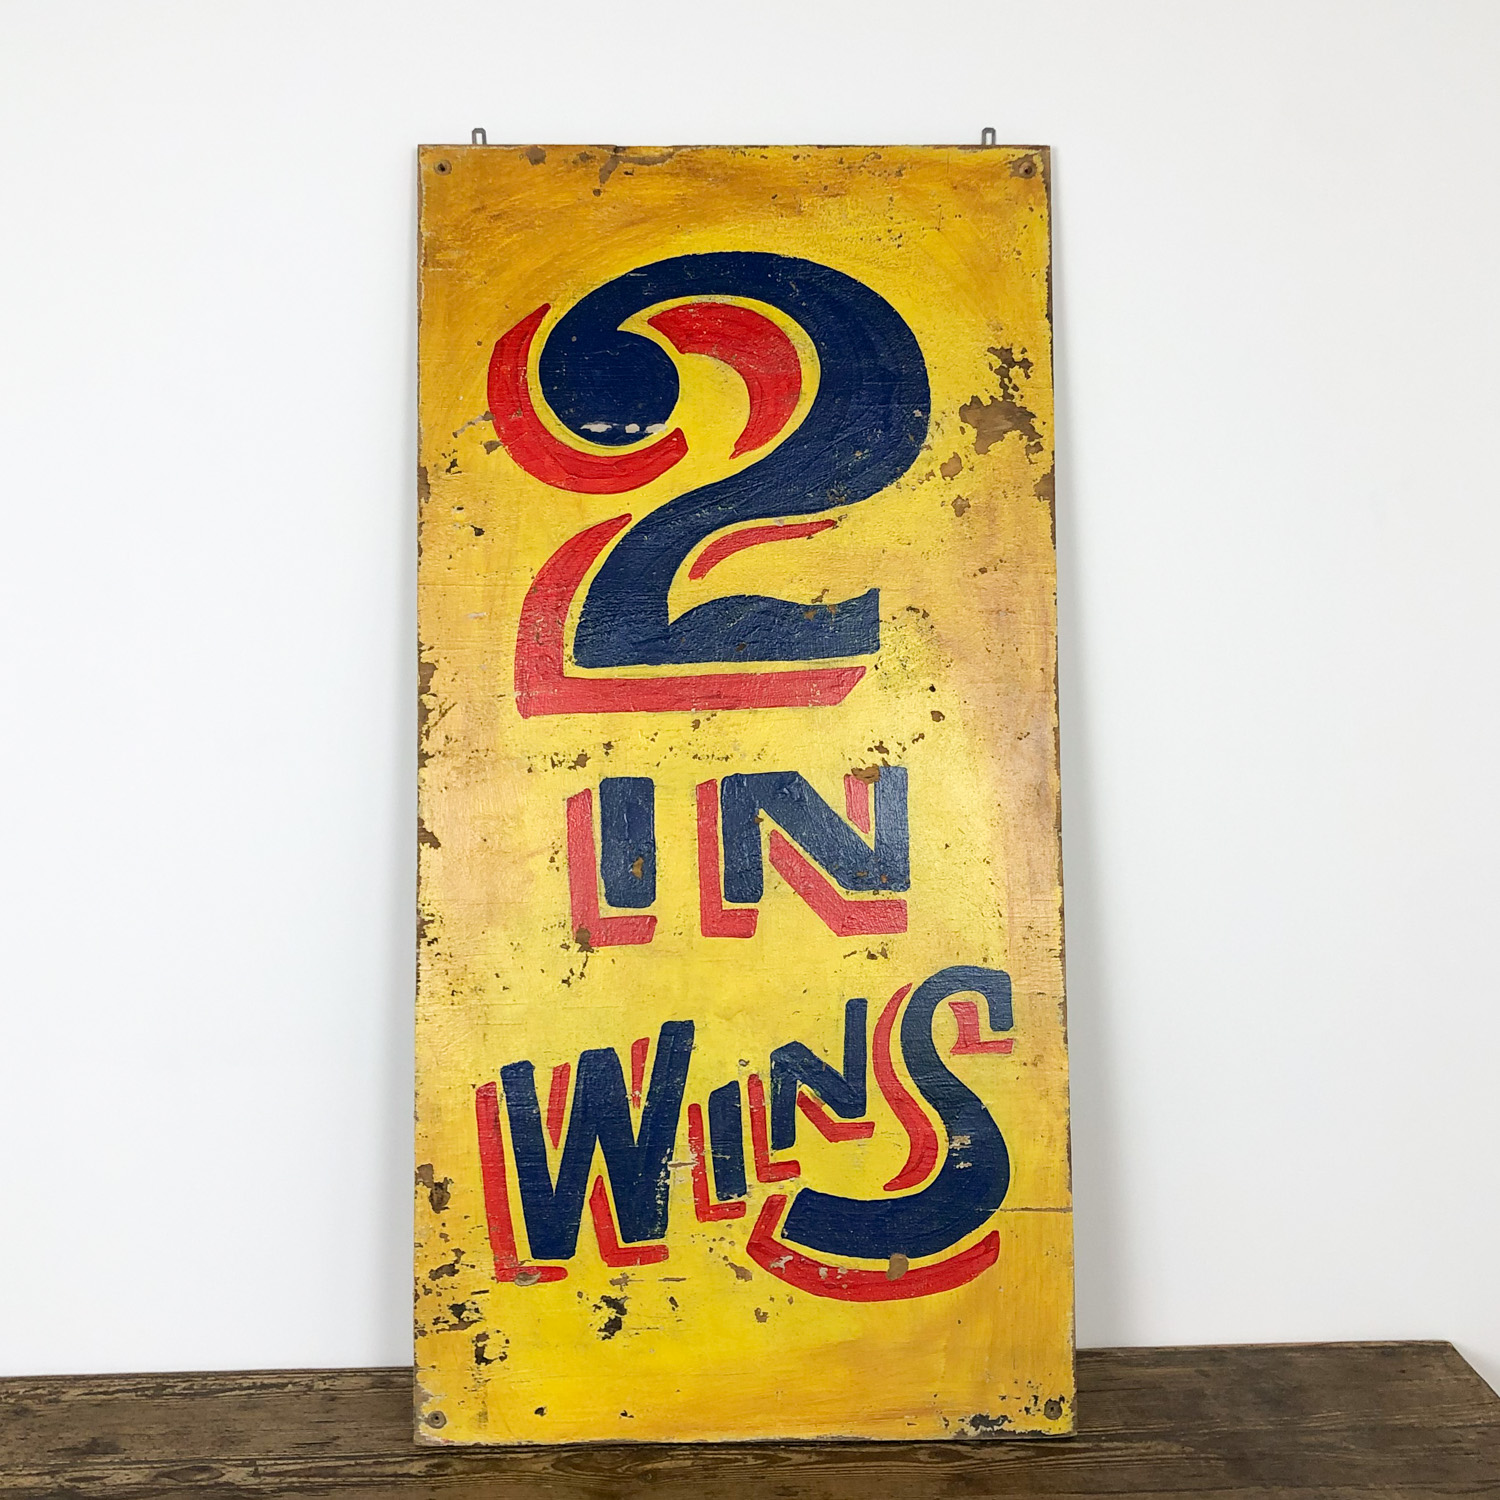 Vintage painted fairground sign 2 in Wins